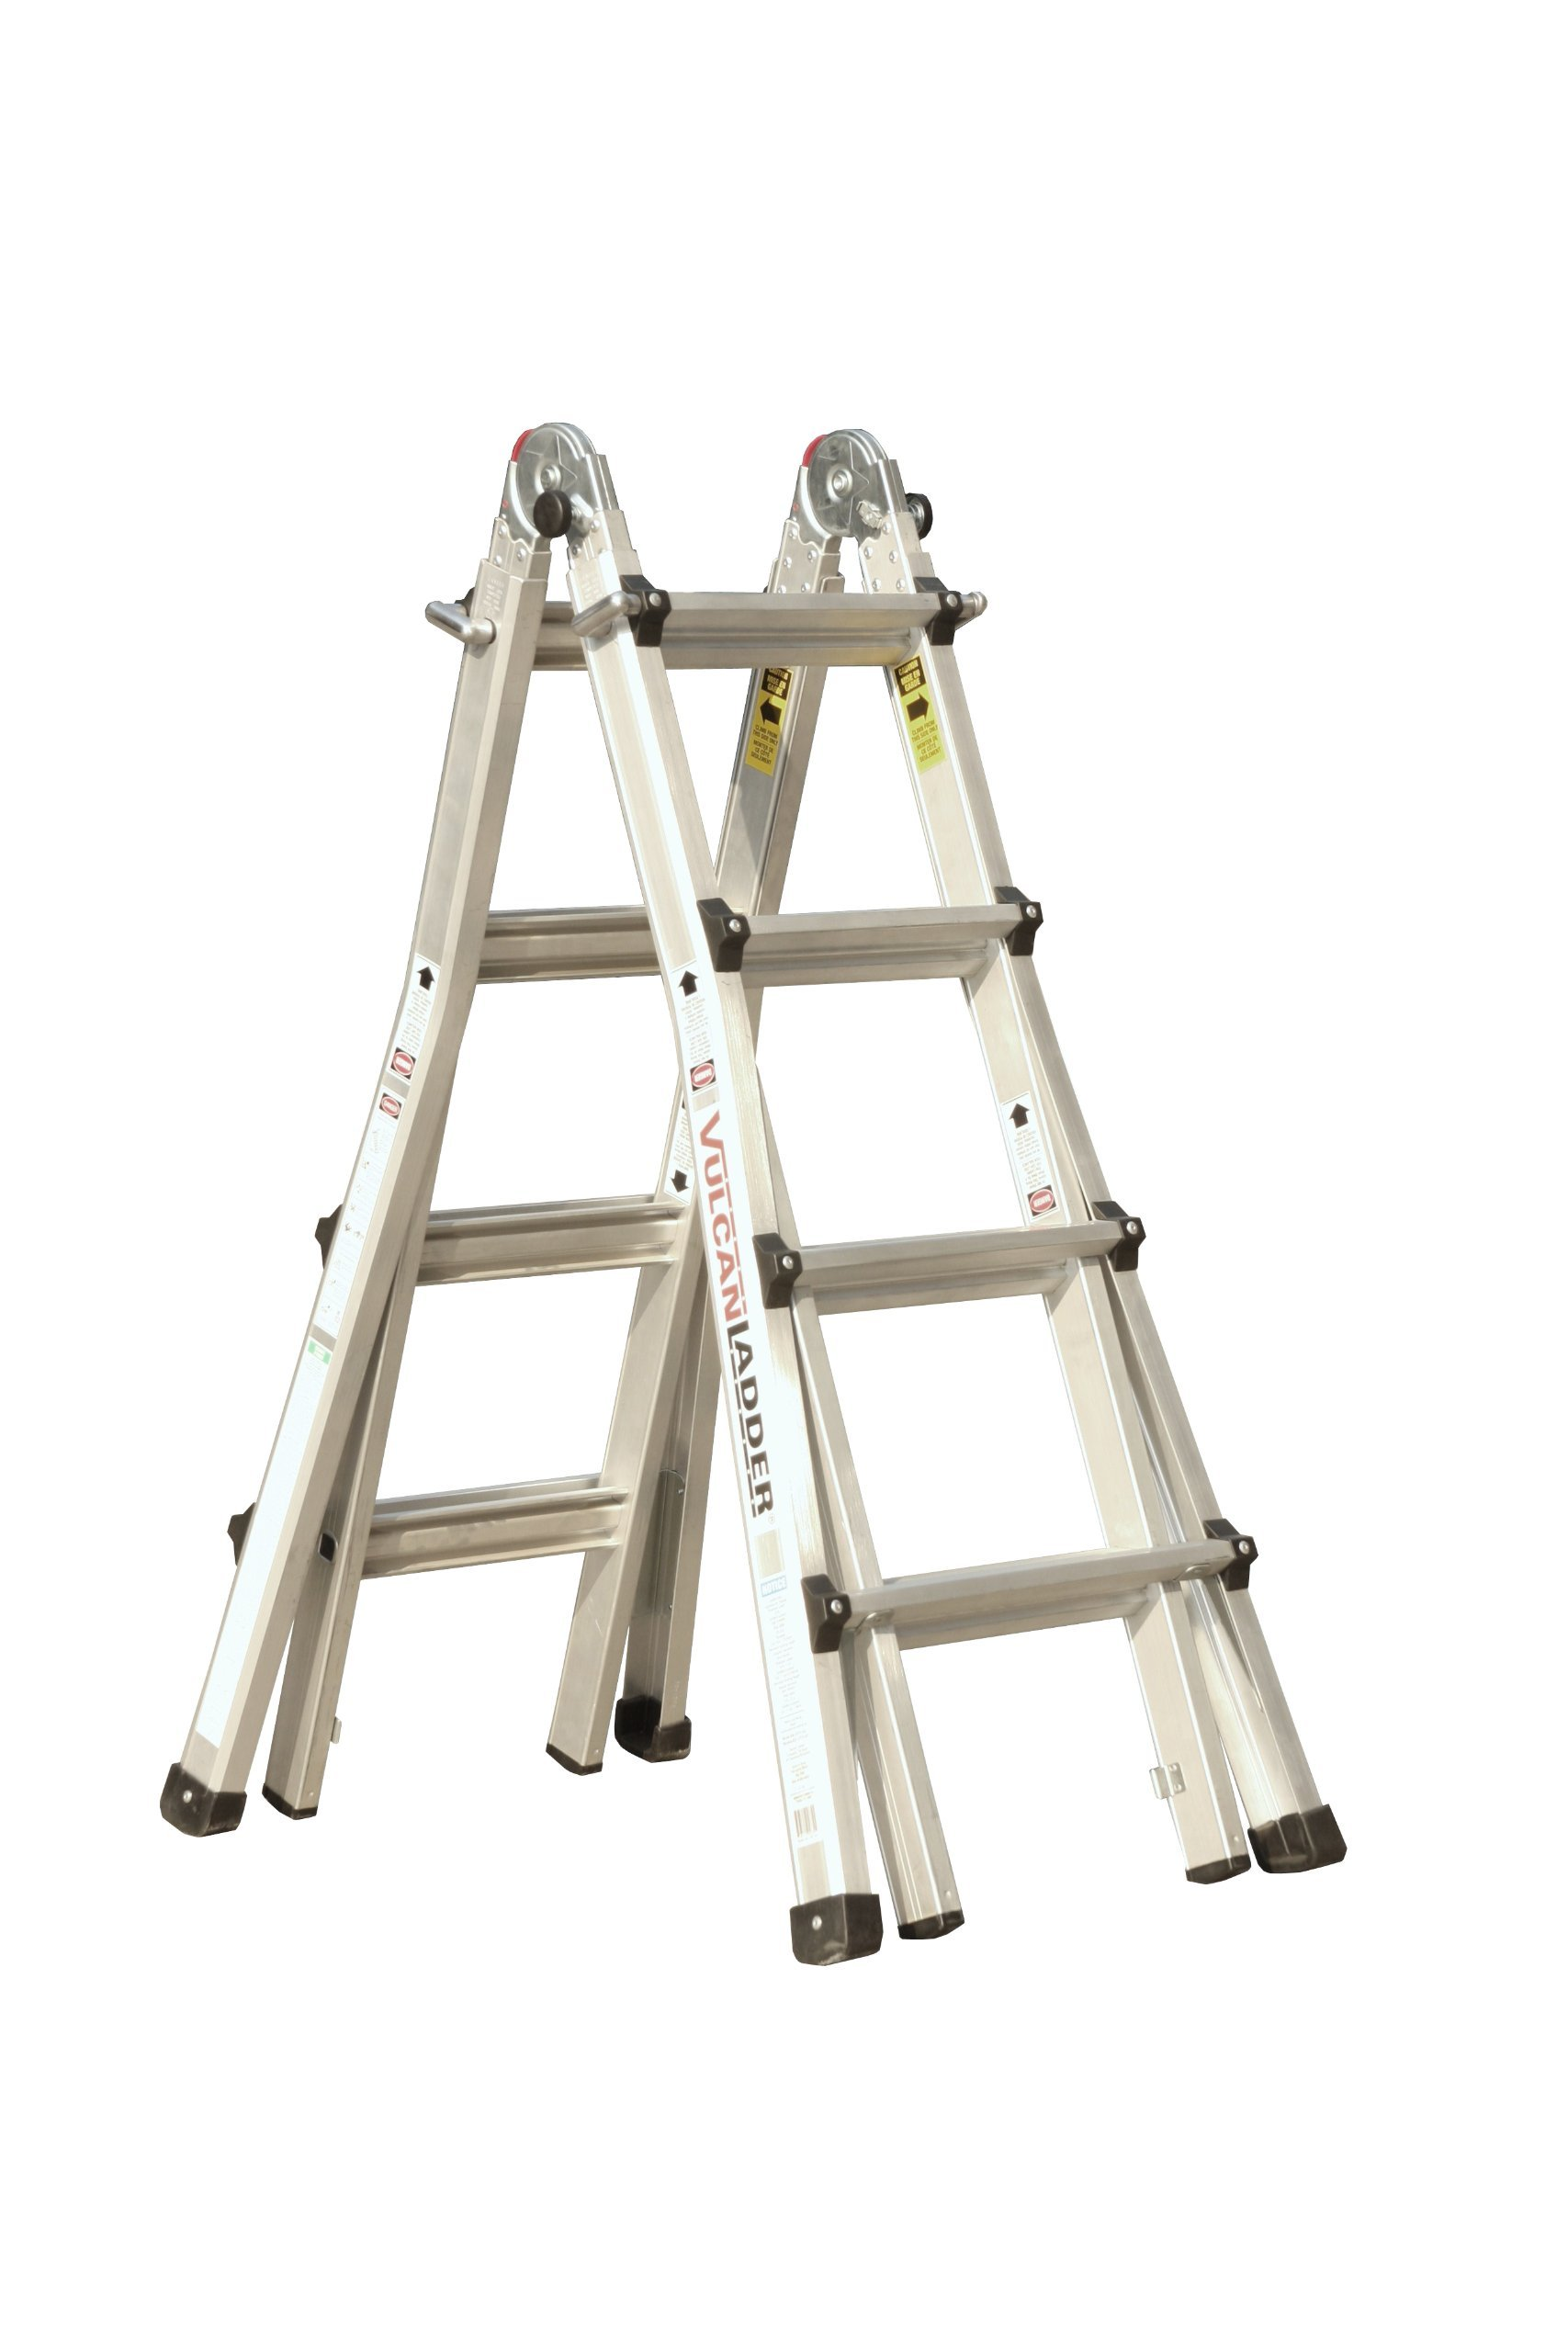 Vulcan Ladder USA 3600735401986540 Stepladder Multi-Task Alu 17Ft 17' MT by Vulcan Ladder USA (Image #1)